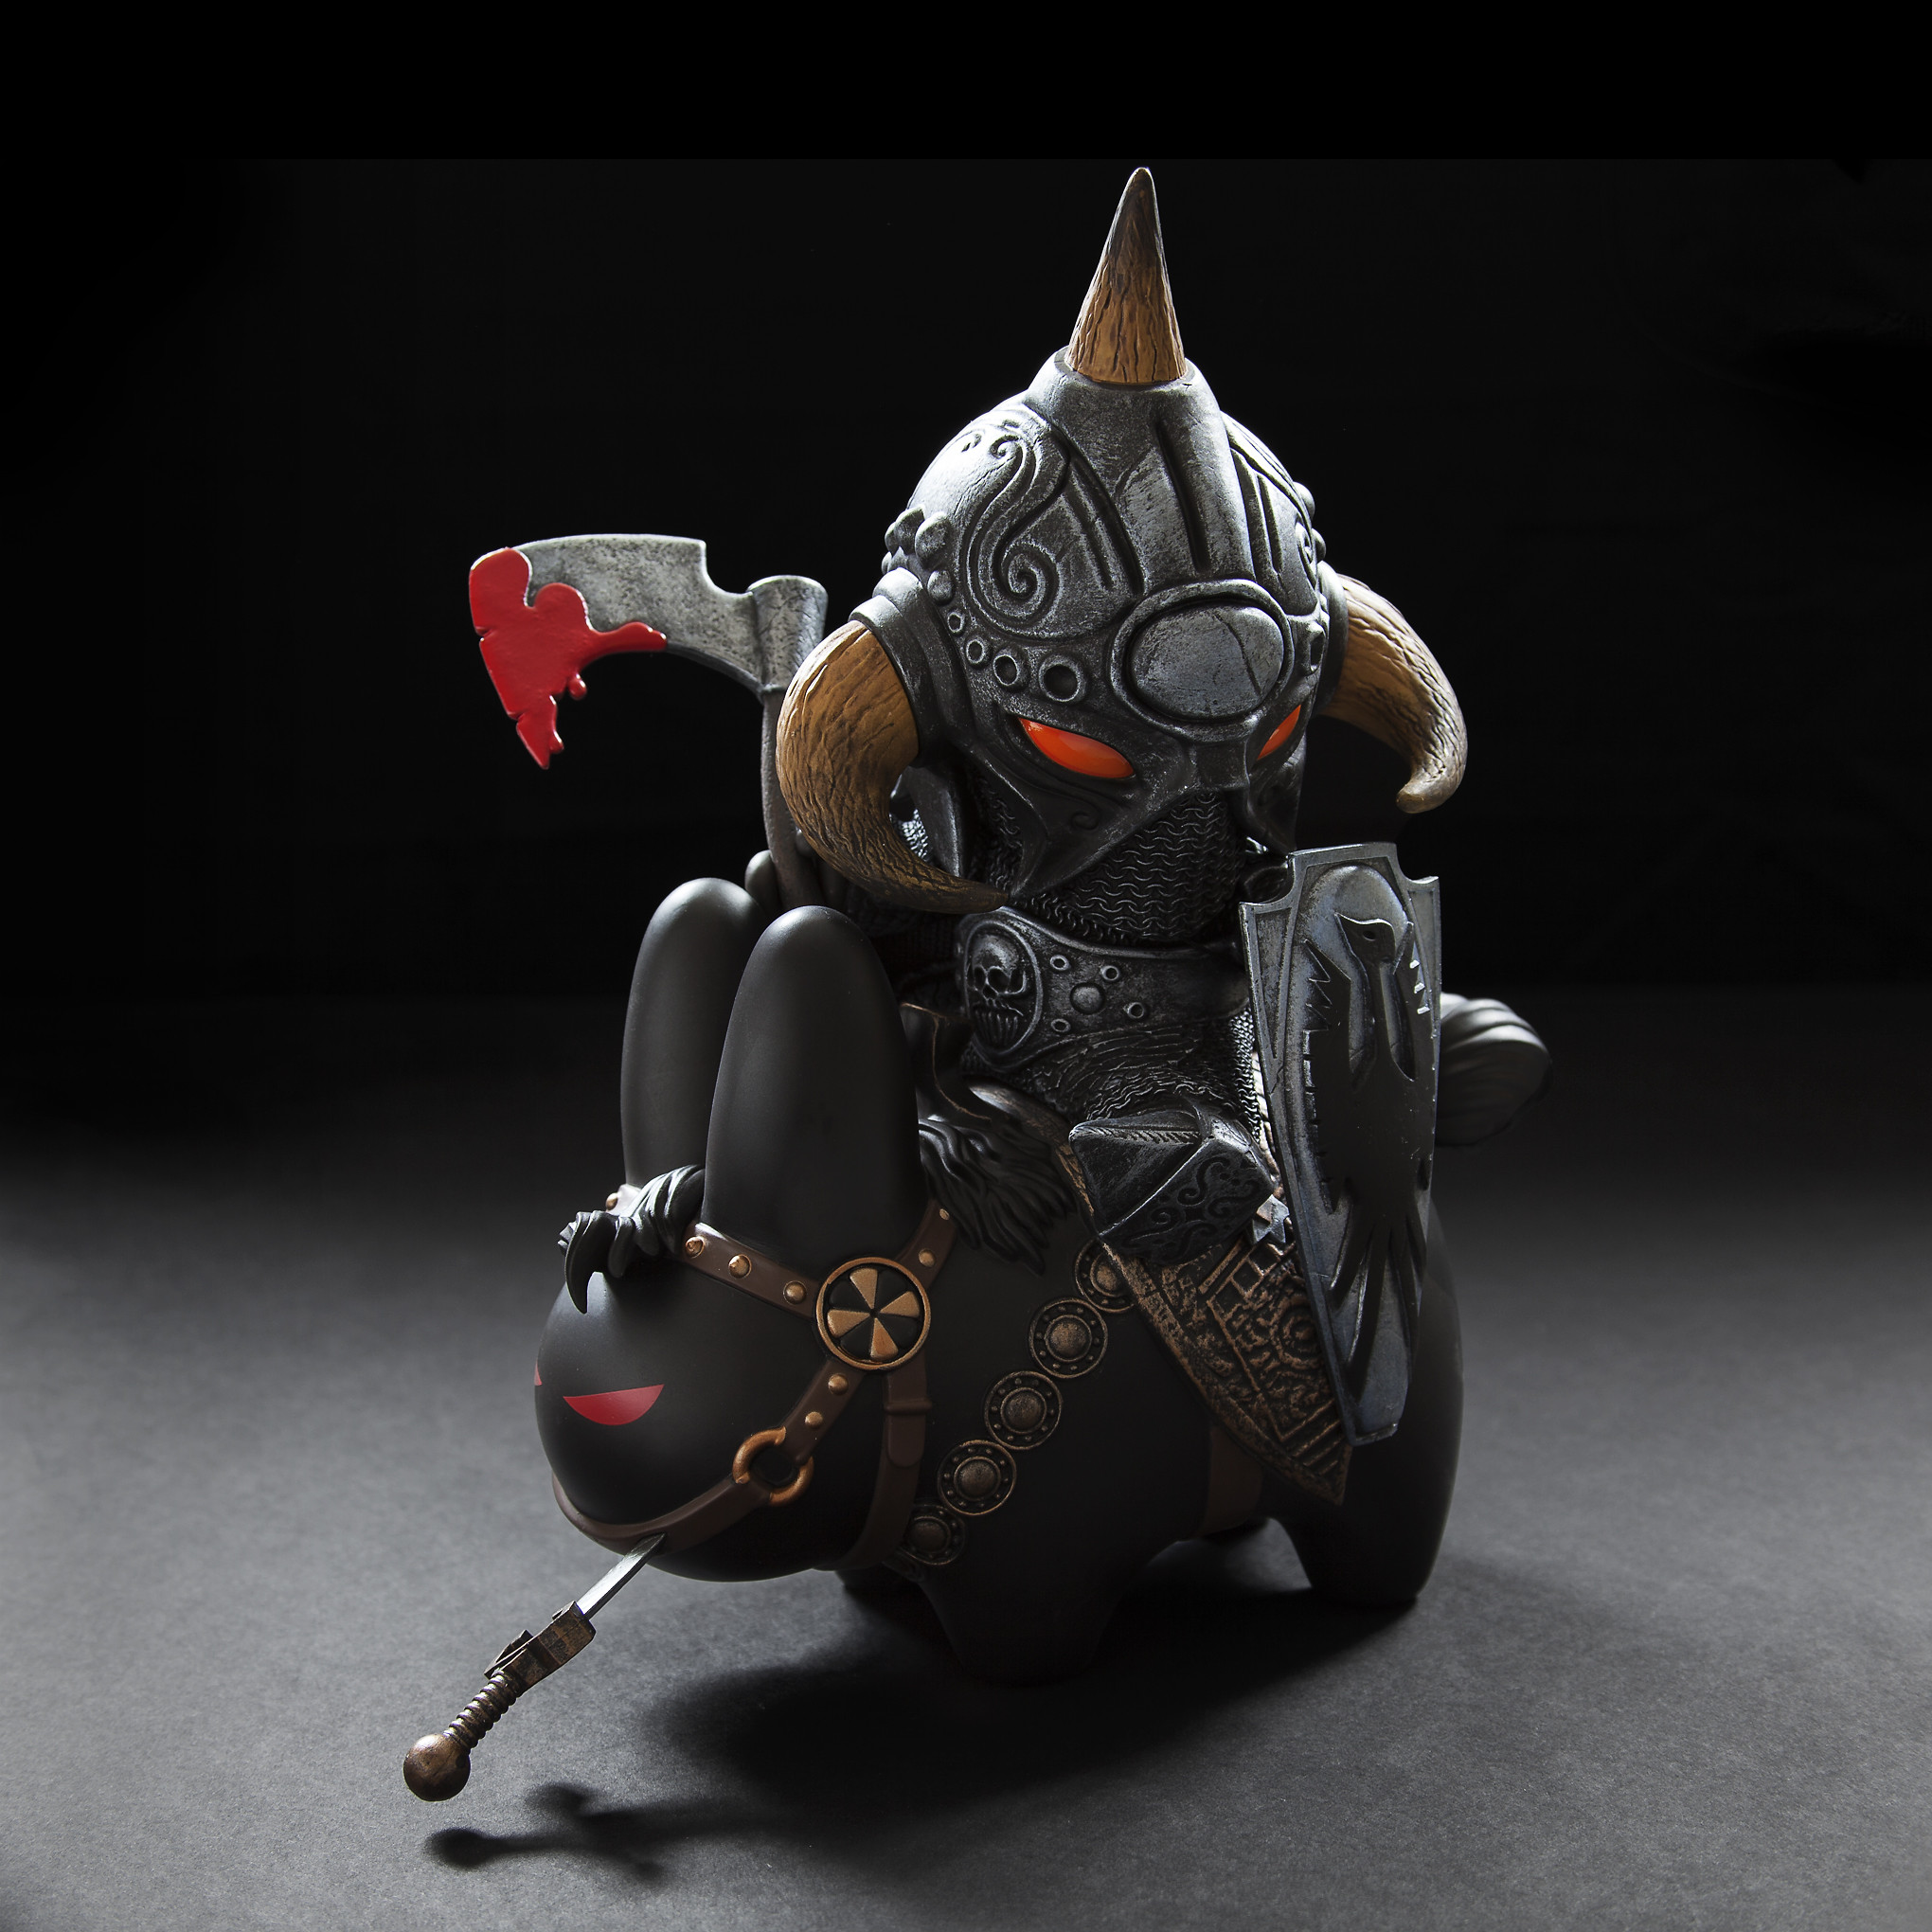 vinyl-frazetta-death-dealer-medium-figure-by-frank-kozik-3.jpg